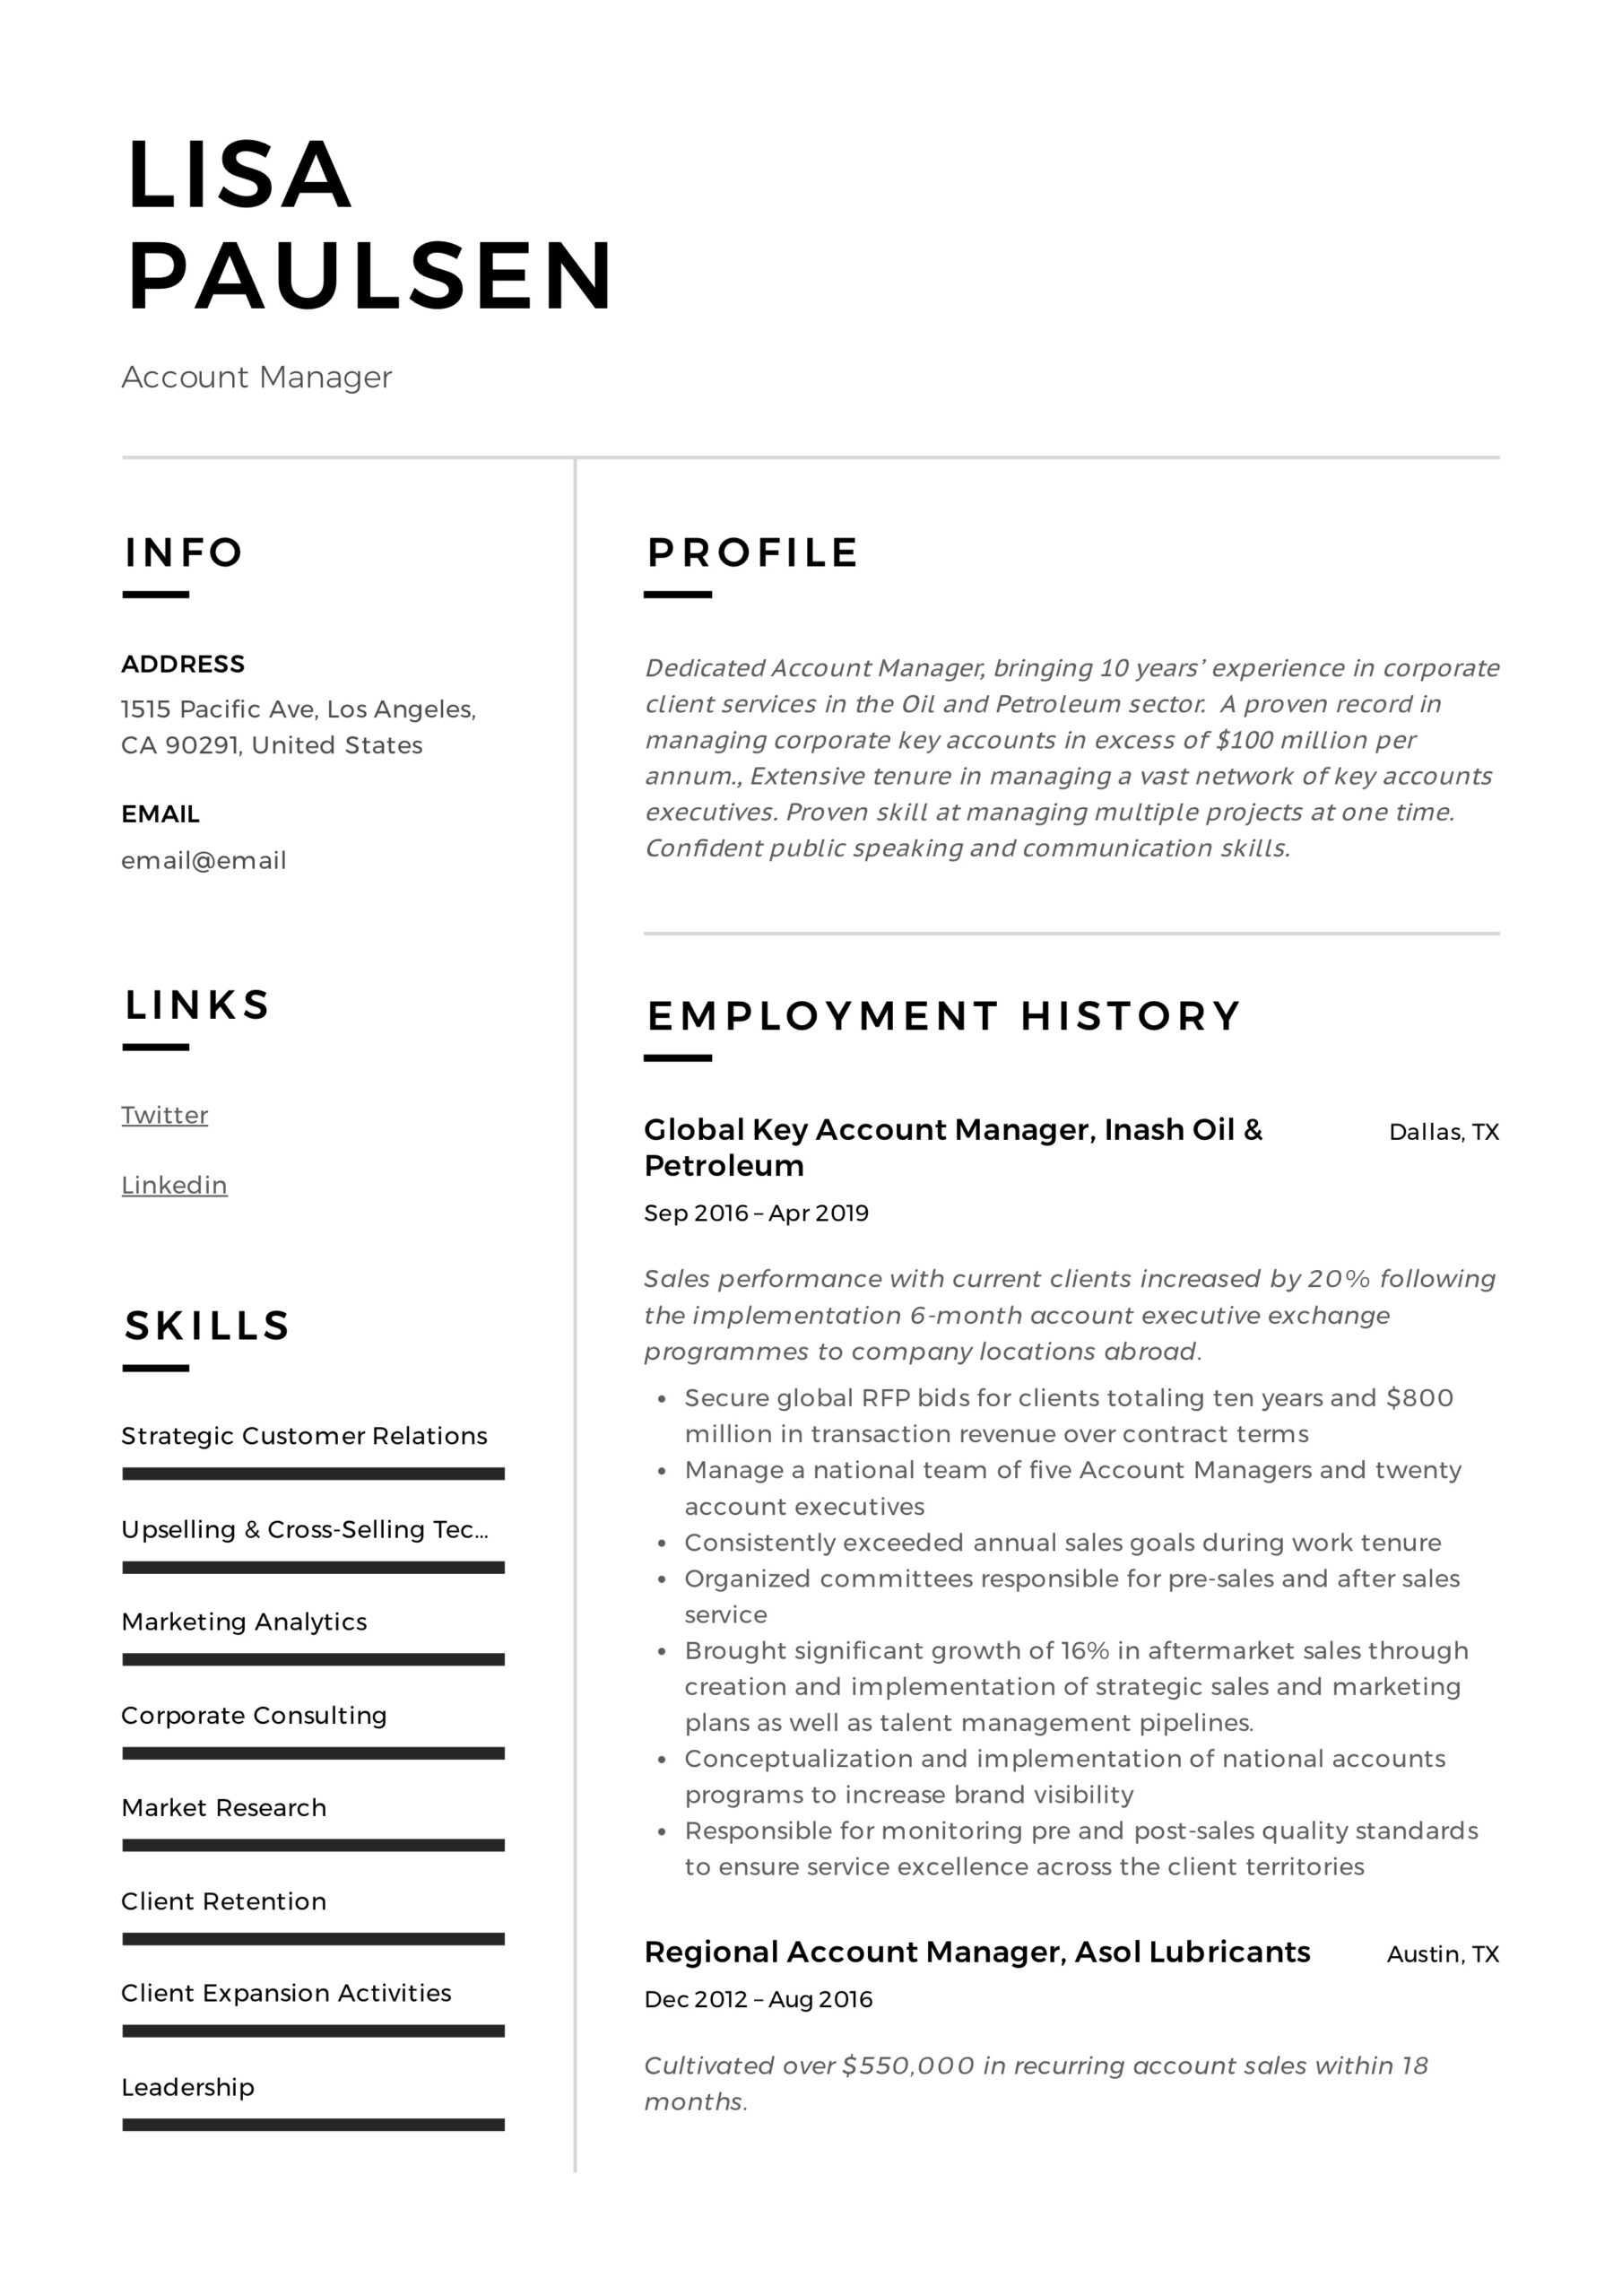 account manager resume writing guide examples responsibilities lisa paulsen funeral home Resume Account Manager Responsibilities Resume